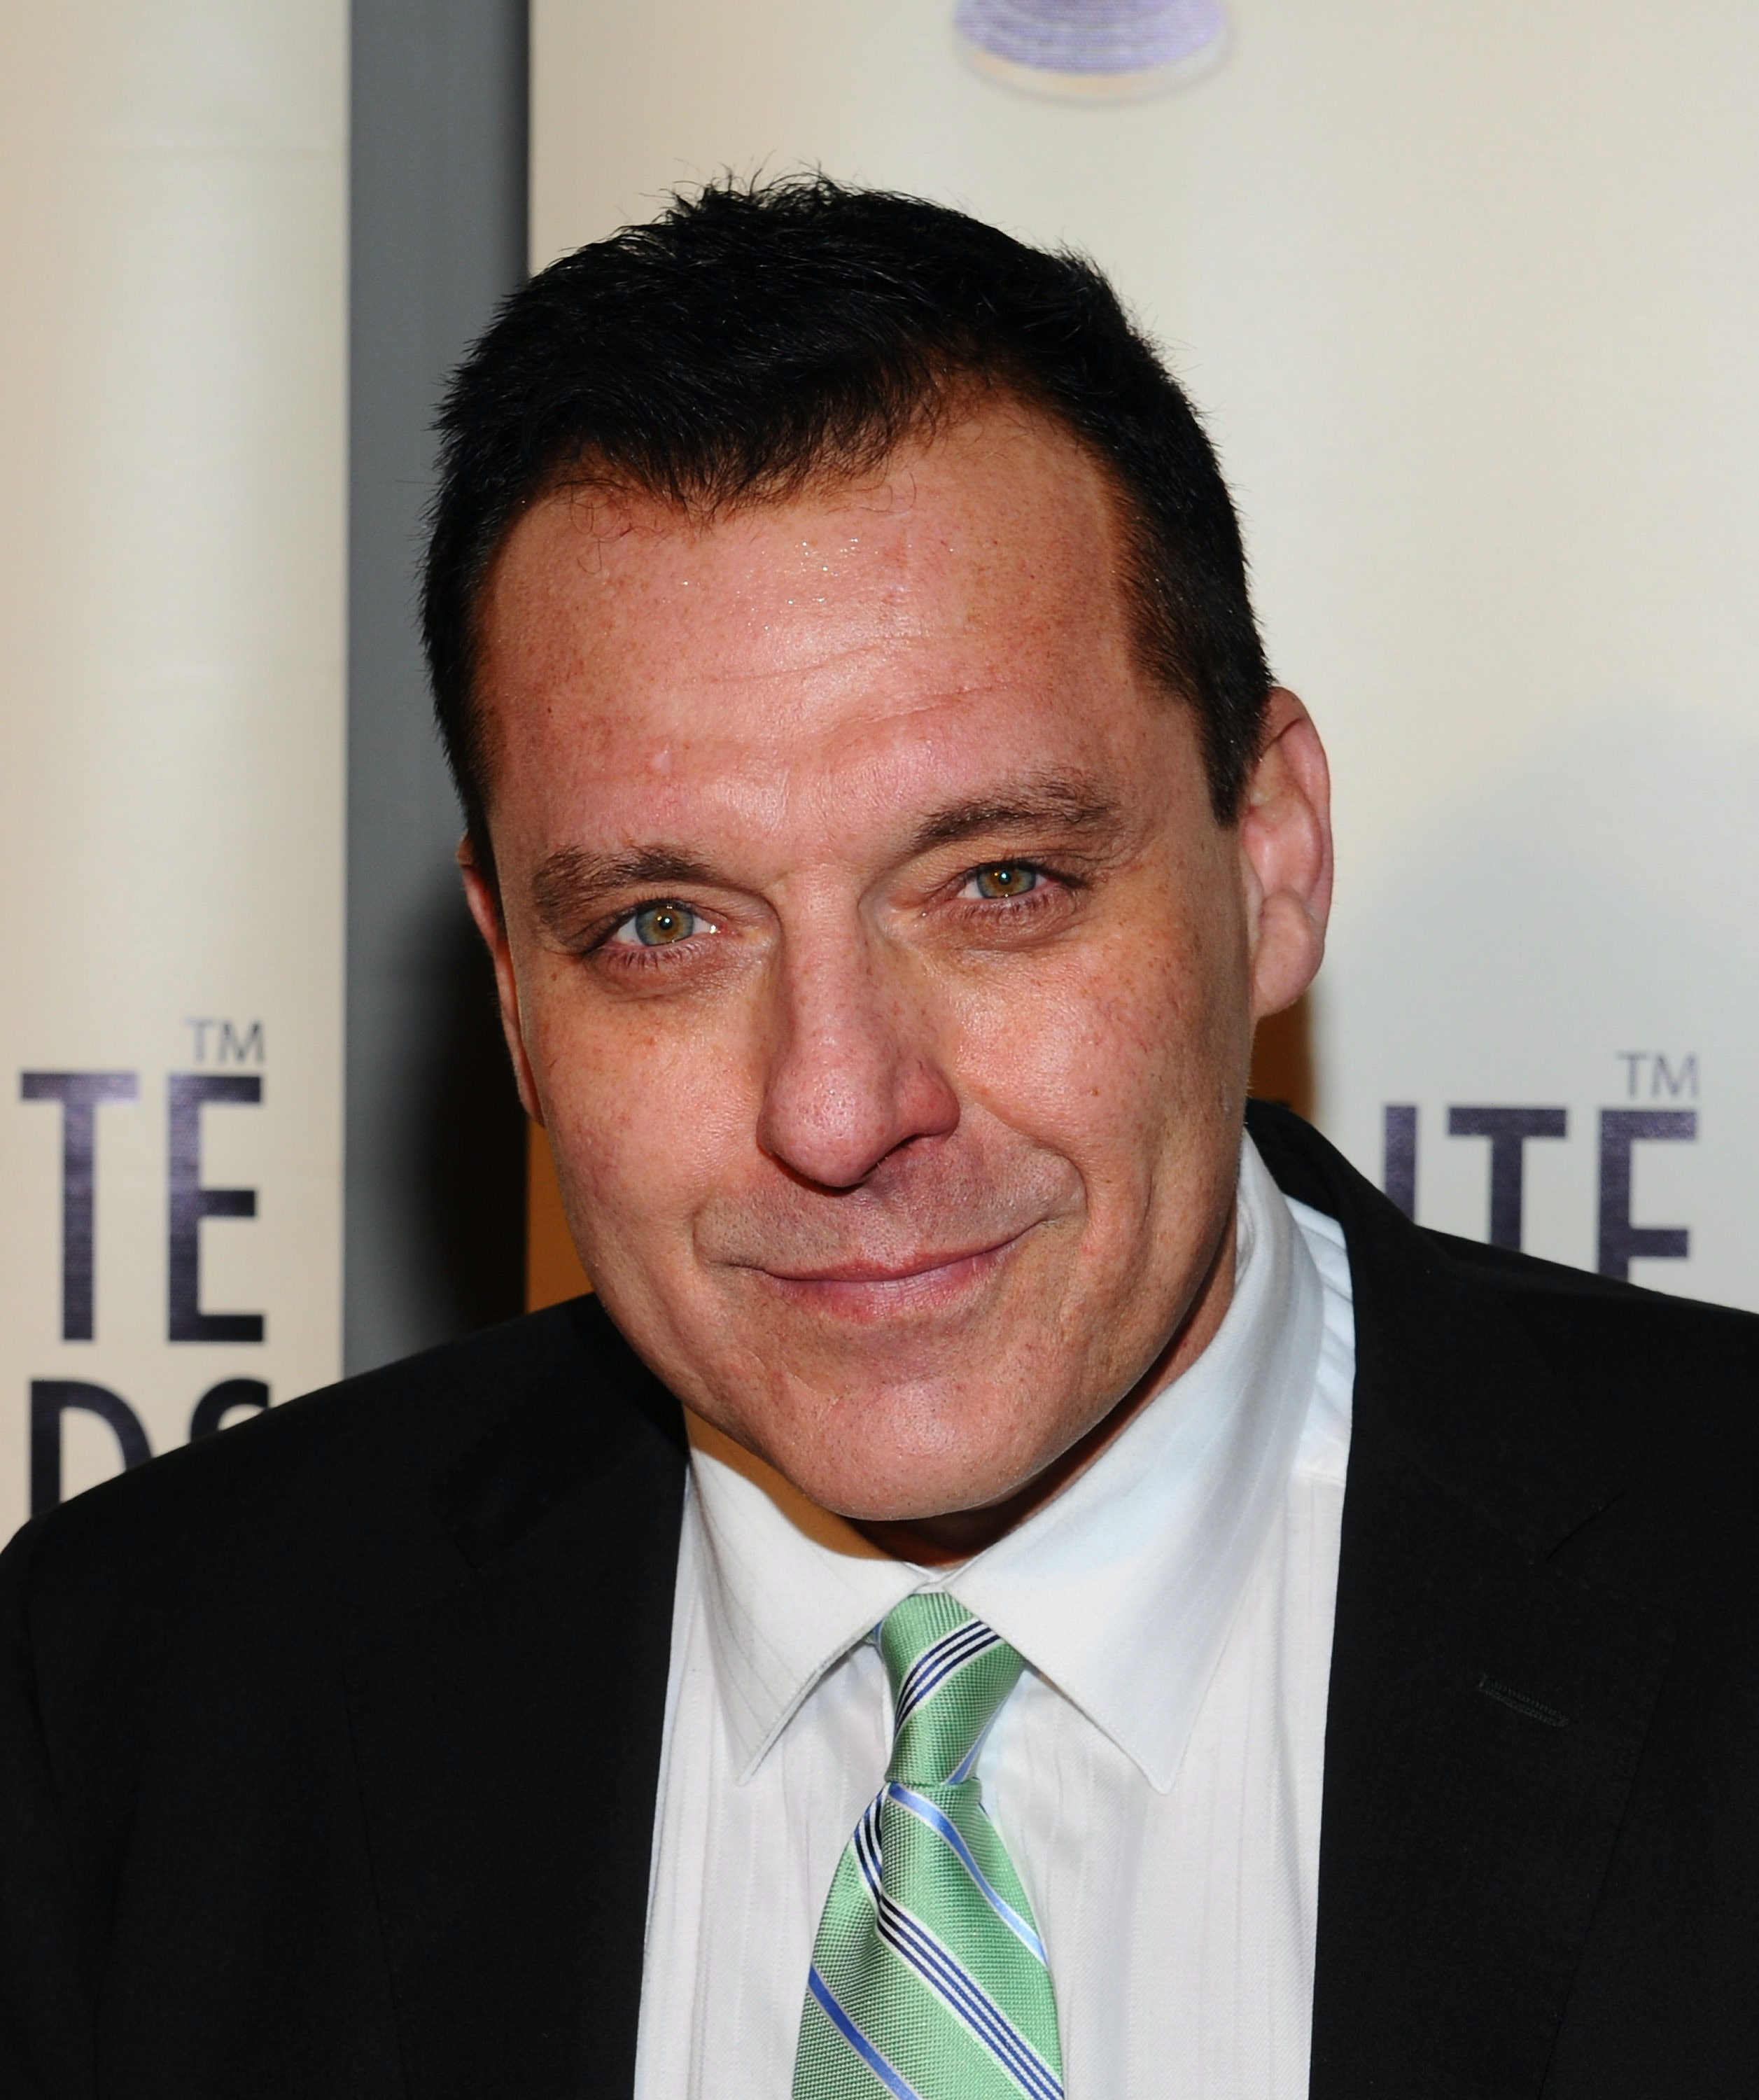 Tom Sizemore was booted from movie set for assaulting girl, 11